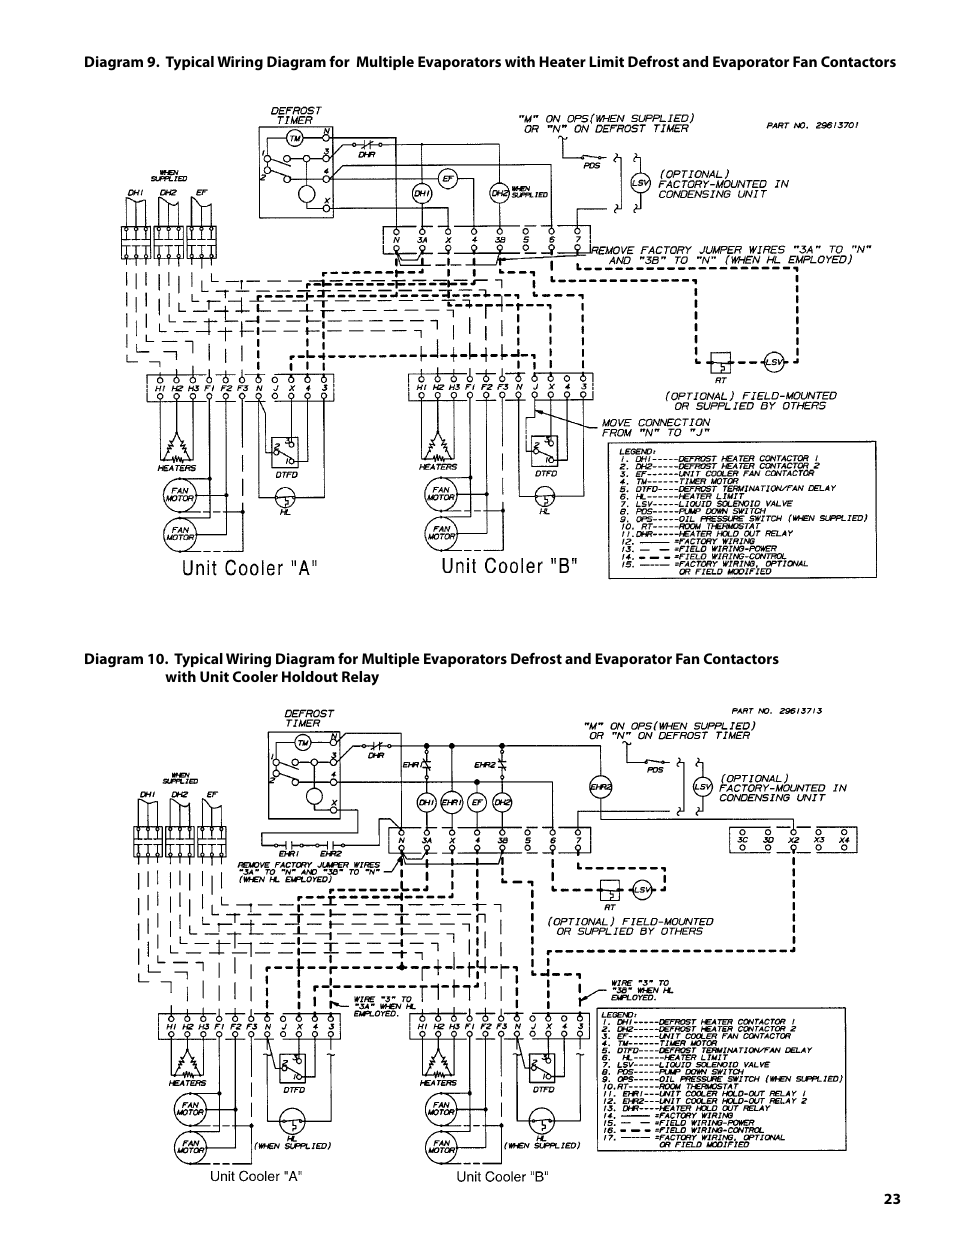 heatcraft refrigeration products condensing units h im cu page23?resize\\\\\\\\\\\\\\\=665%2C861 bhon freezer defrost timer wiring diagrams on bhon download commercial freezer defrost timer wiring at gsmx.co